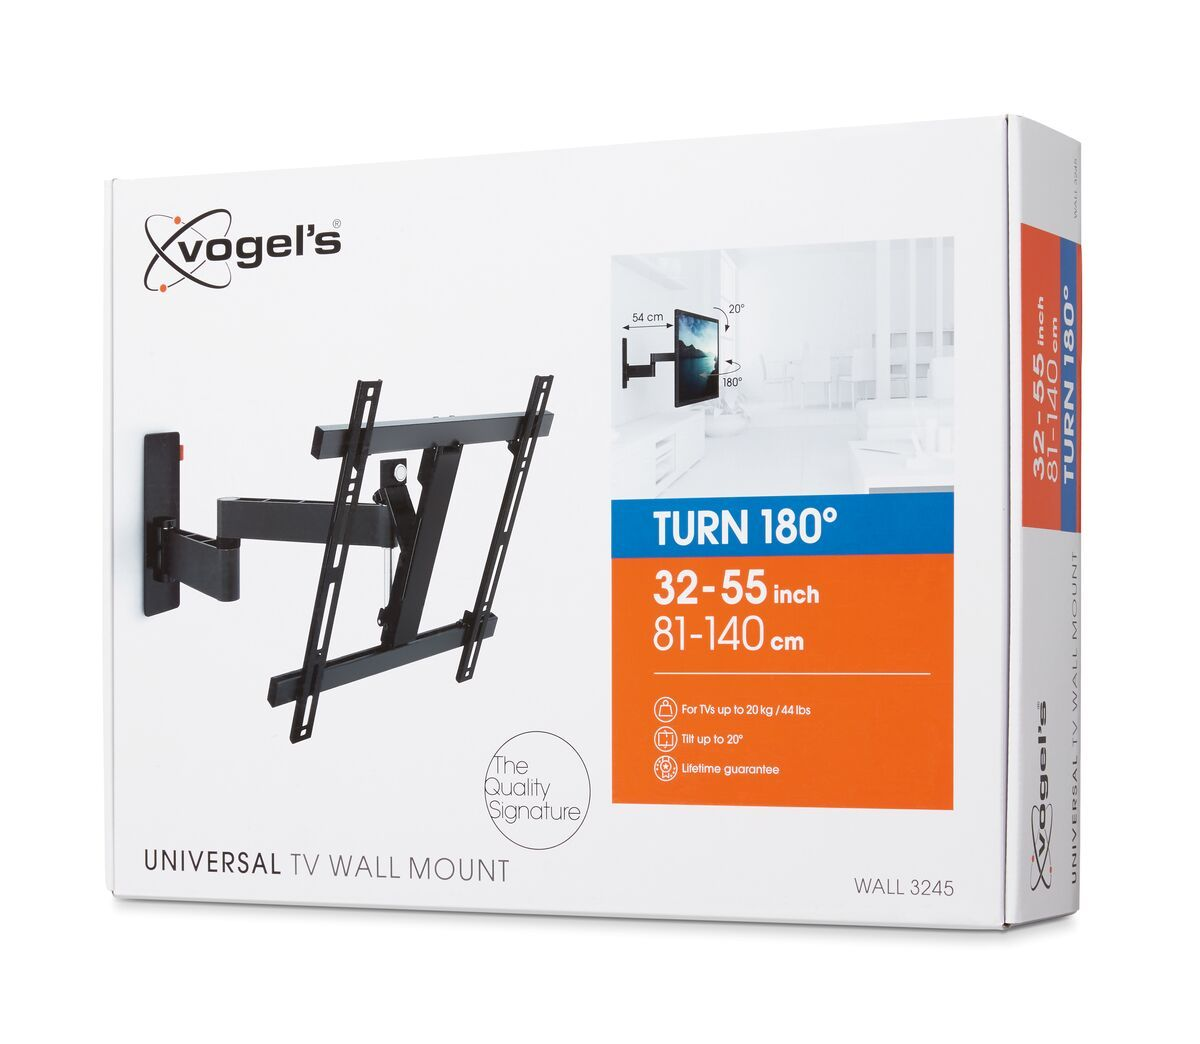 Vogel's WALL 3245 Full-Motion TV Wall Mount (black) - Suitable for Full motion (up to 180°) - Suitable for Tilt up to 20° - Suitable for Pack shot 3D